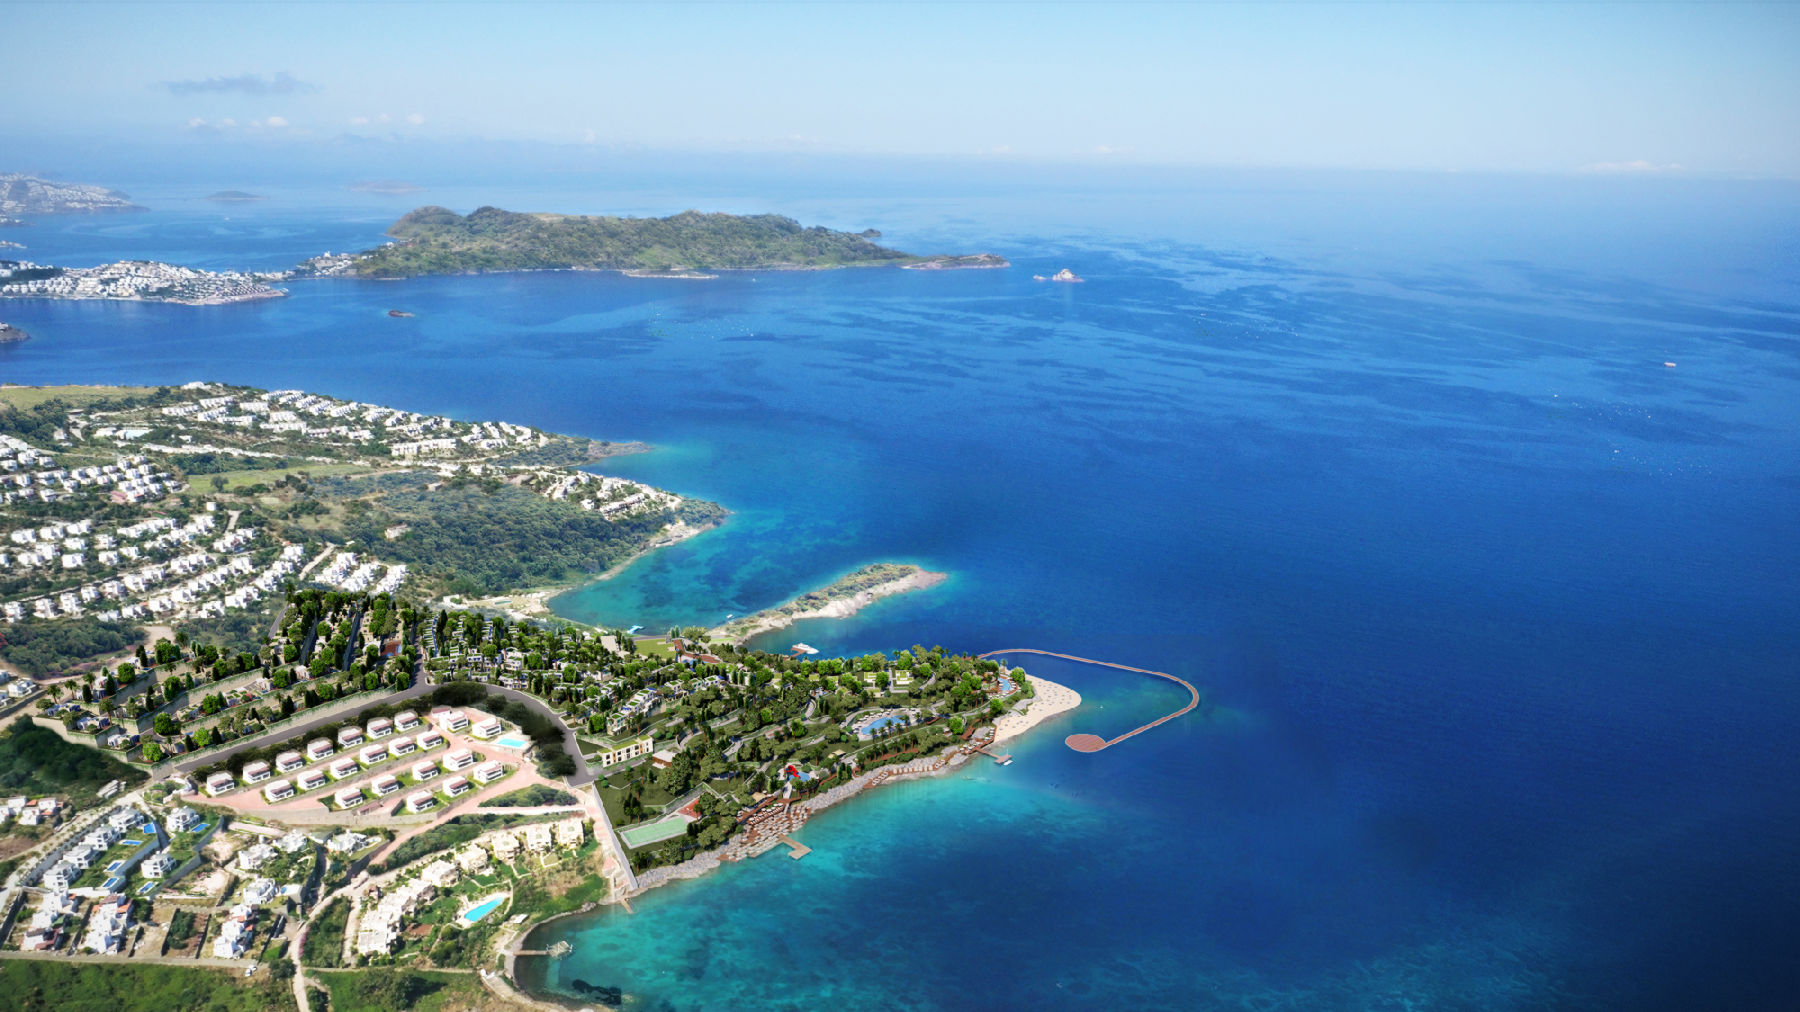 Planting a seed: Banyan Tree offers investment and lifestyle in Bodrum